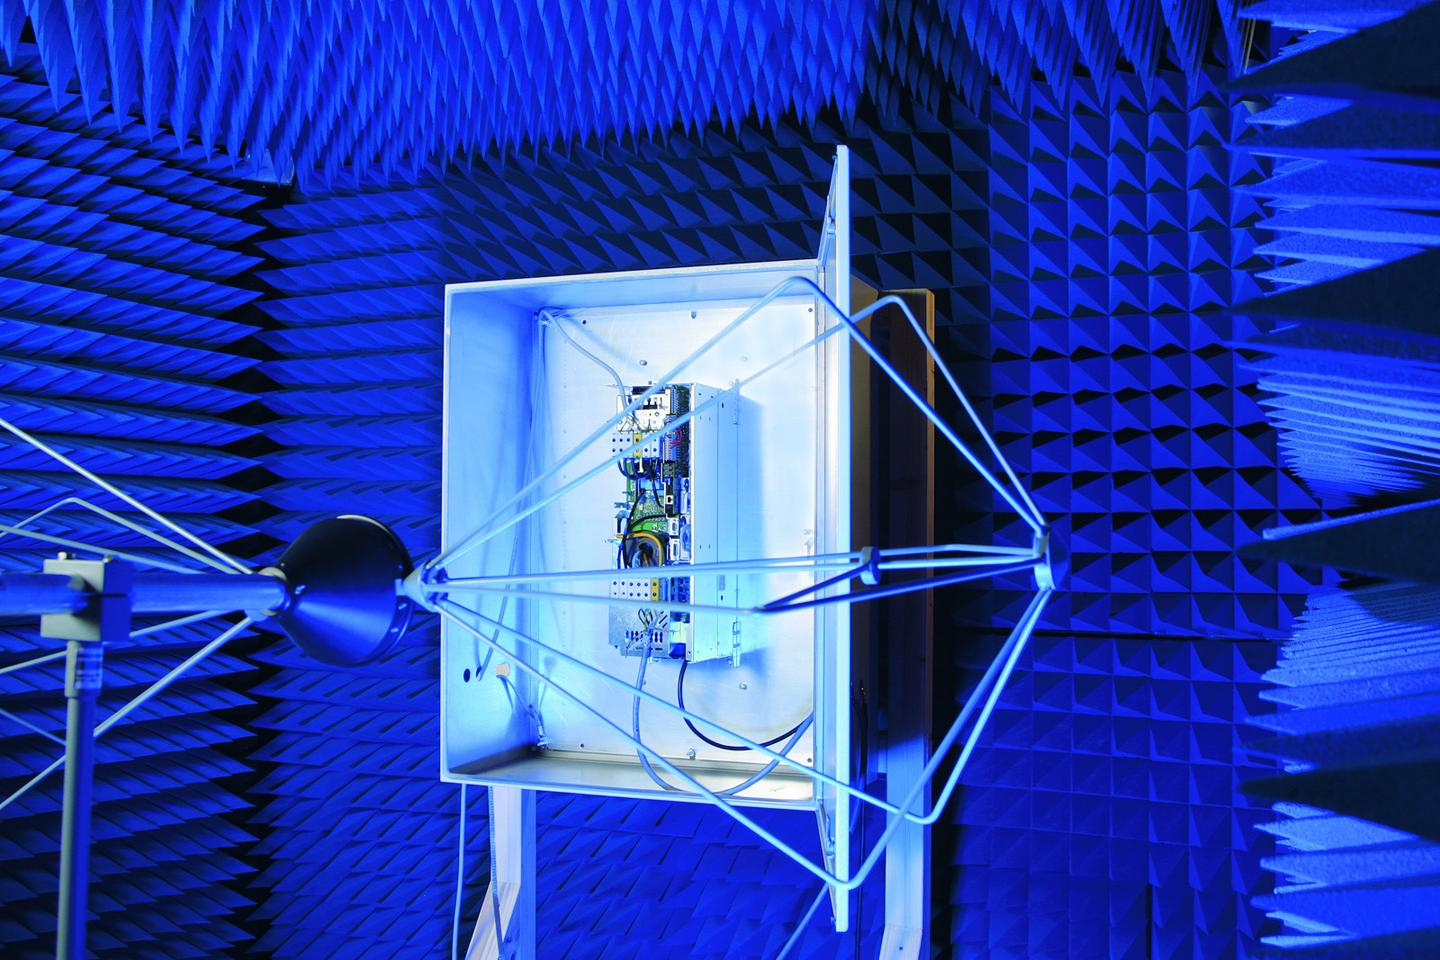 The electromagnetic compatibility of vehicle components is measured in a Fraunhofer lab